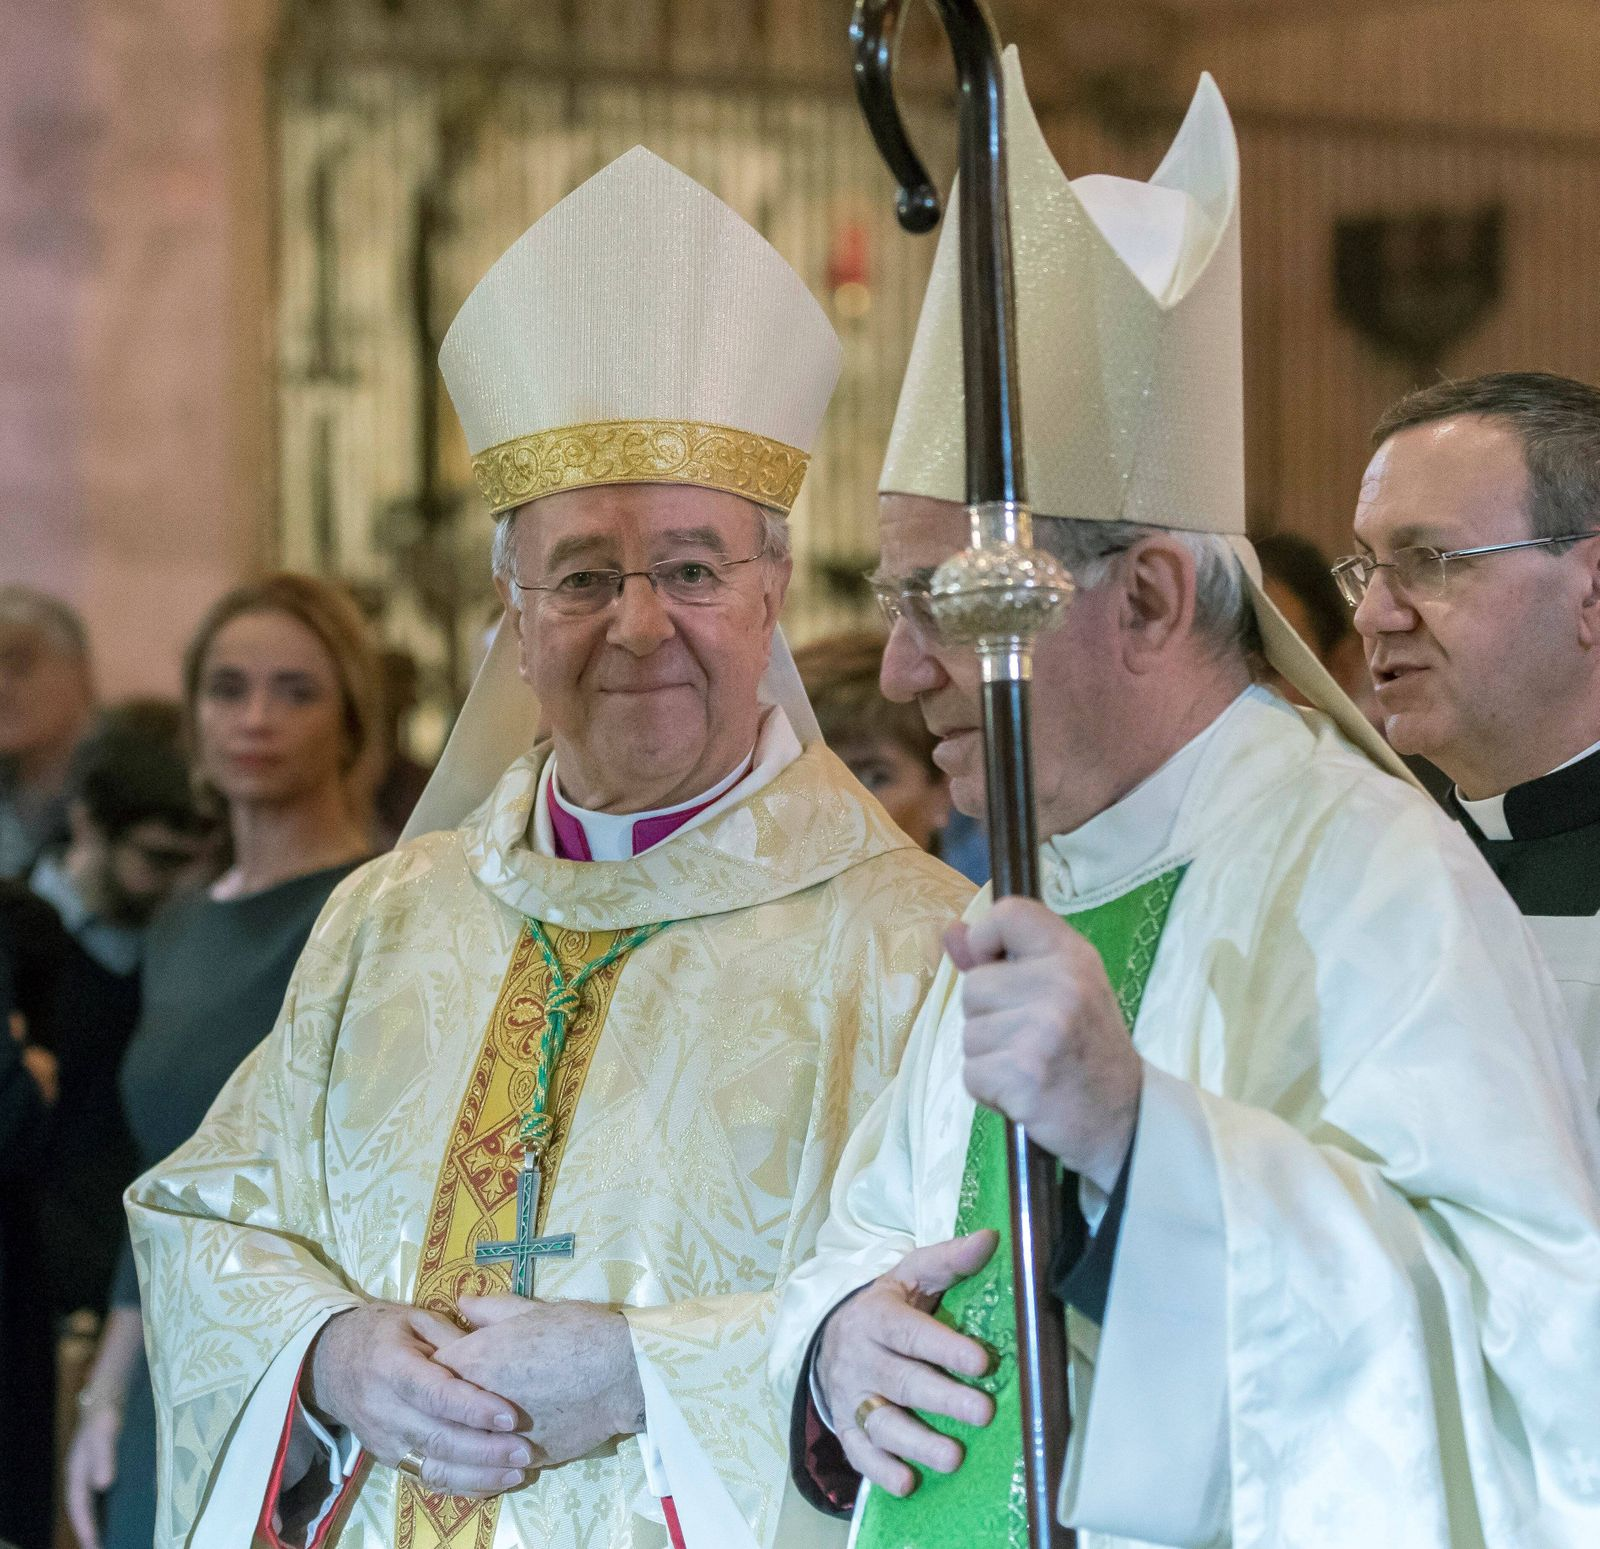 New Bishop of Majorca 69 year old Sebastia Taltavull takes office during a ceremony held in Palma